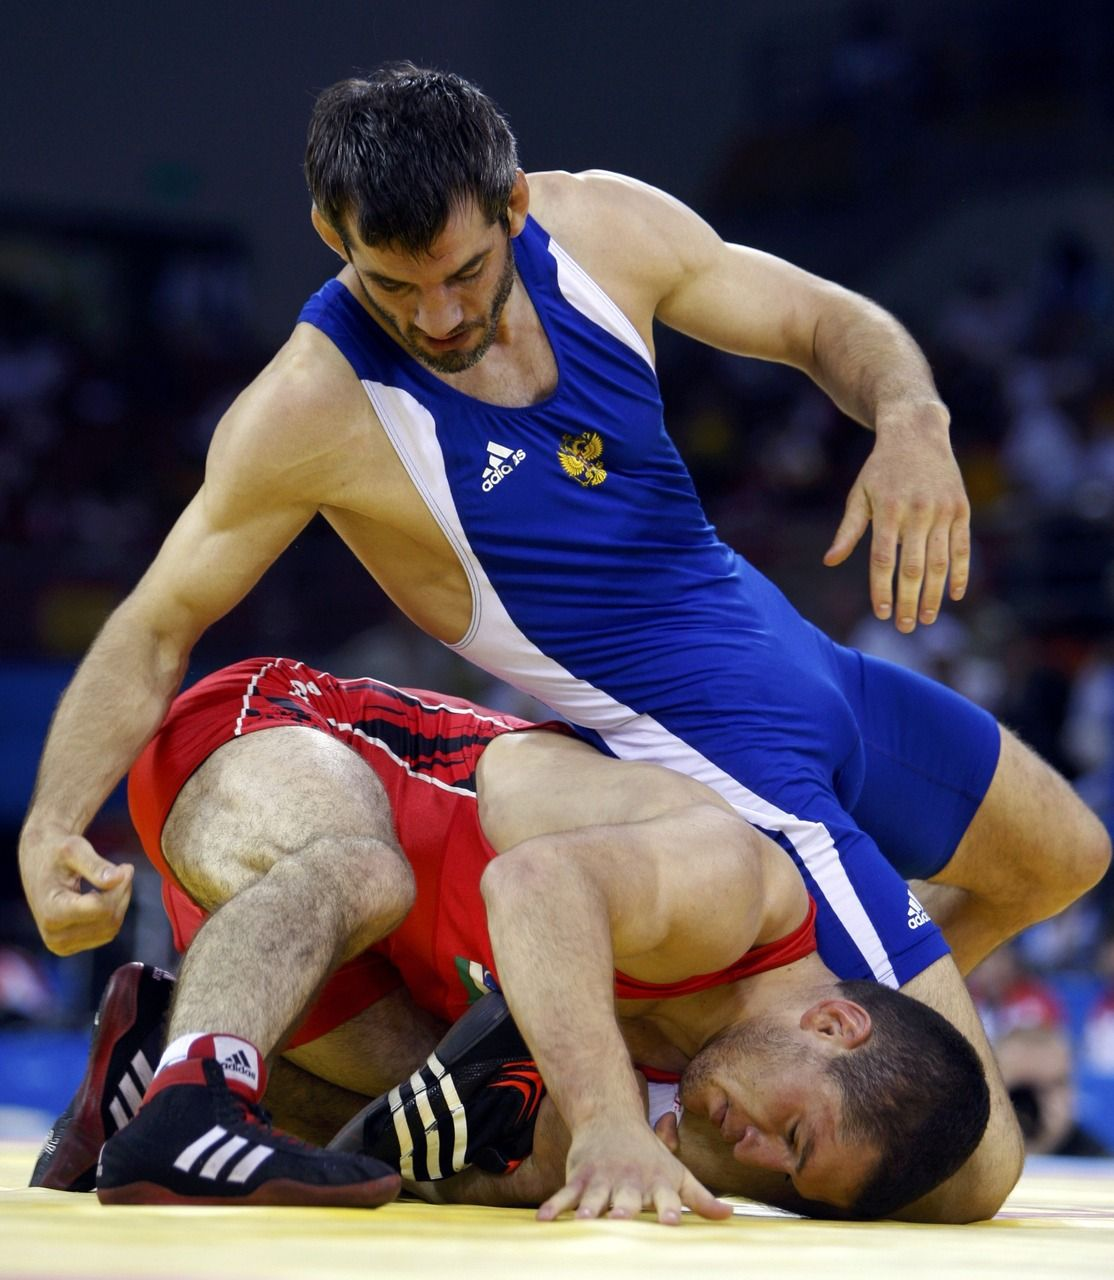 No Other Thrill Olympic wrestling, Olympic medals